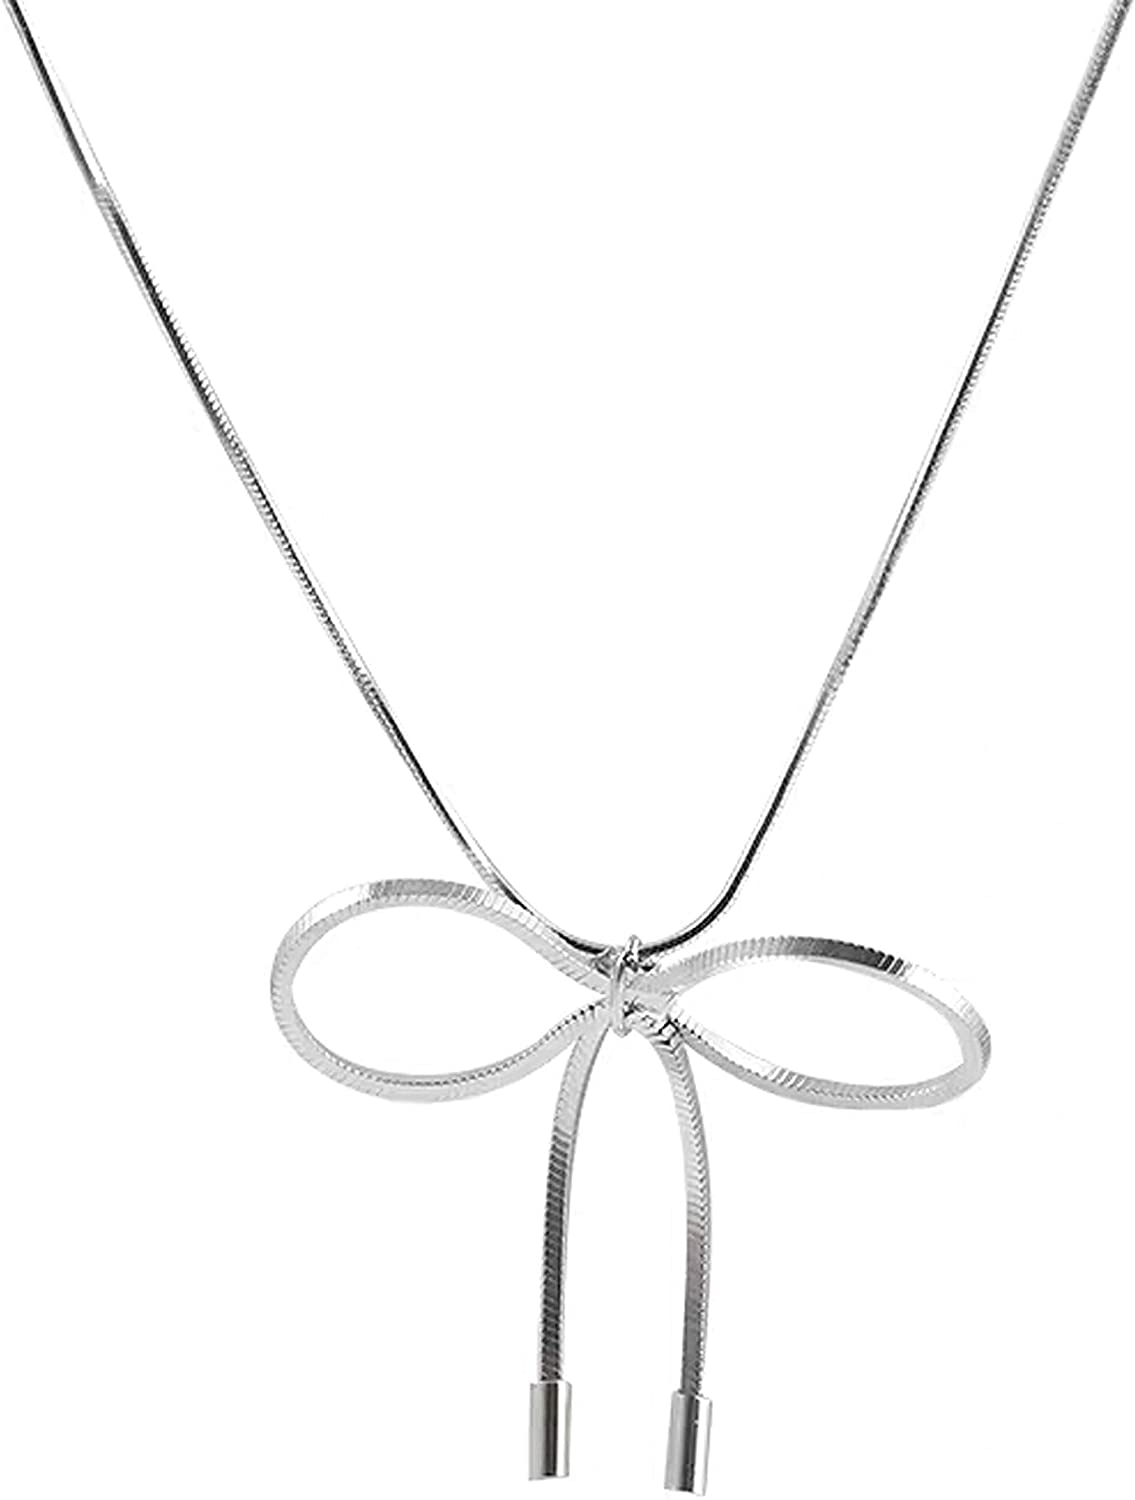 Hiqmic 925 Sterling Silver Gold Plated Fashion Bowknot Neck Chain Necklace 12.5